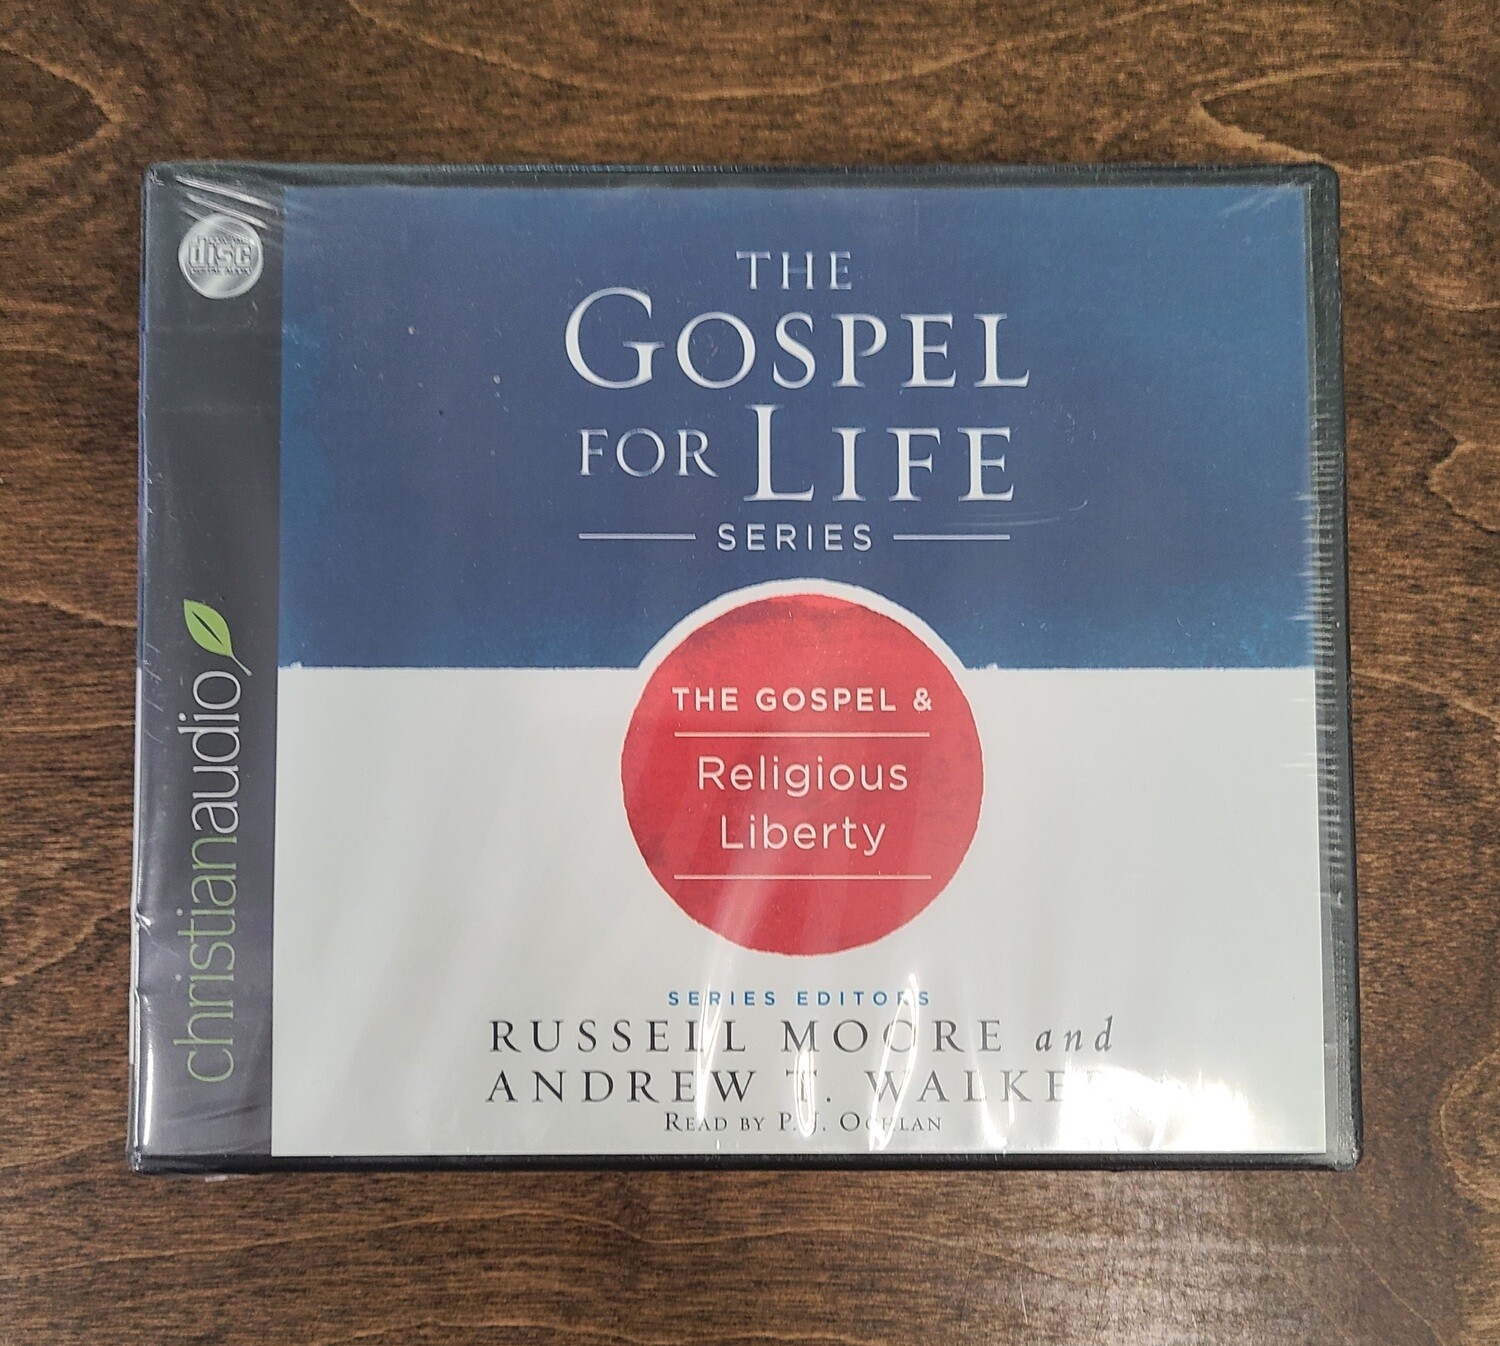 The Gospel for Life: The Gospel and Religious Liberty by Russell Moore and Andrew T. Walker - Audiobook